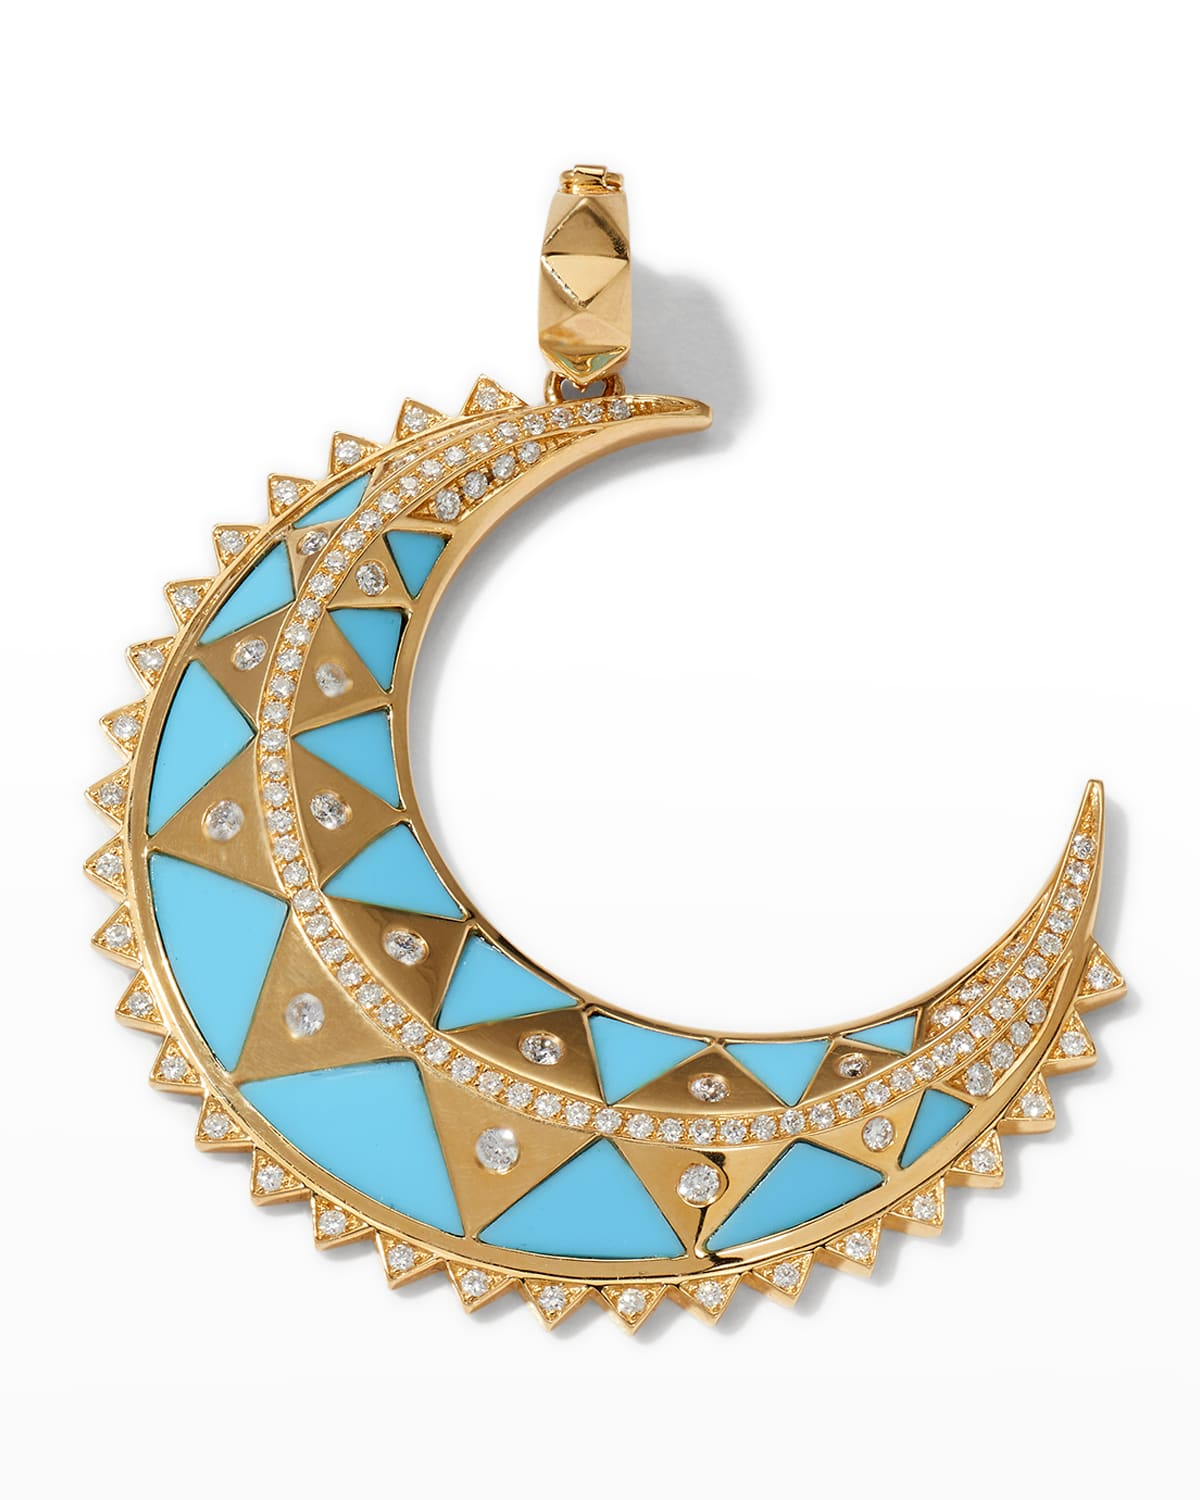 18k Yellow Gold Major Crescent Moon Medallion in Turquoise